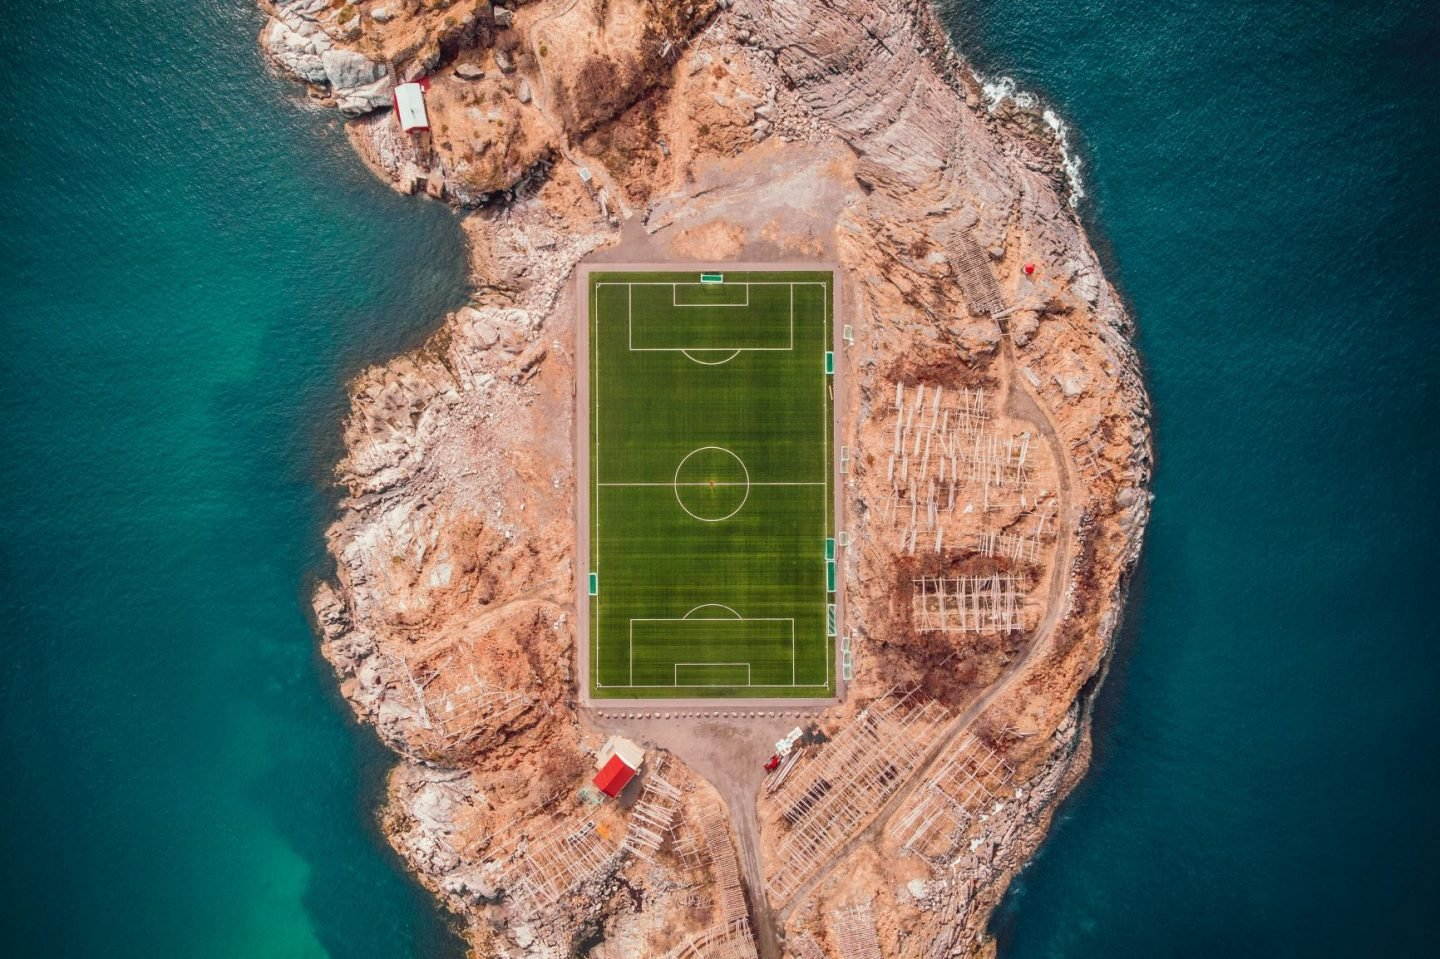 Amazing questions about soccer